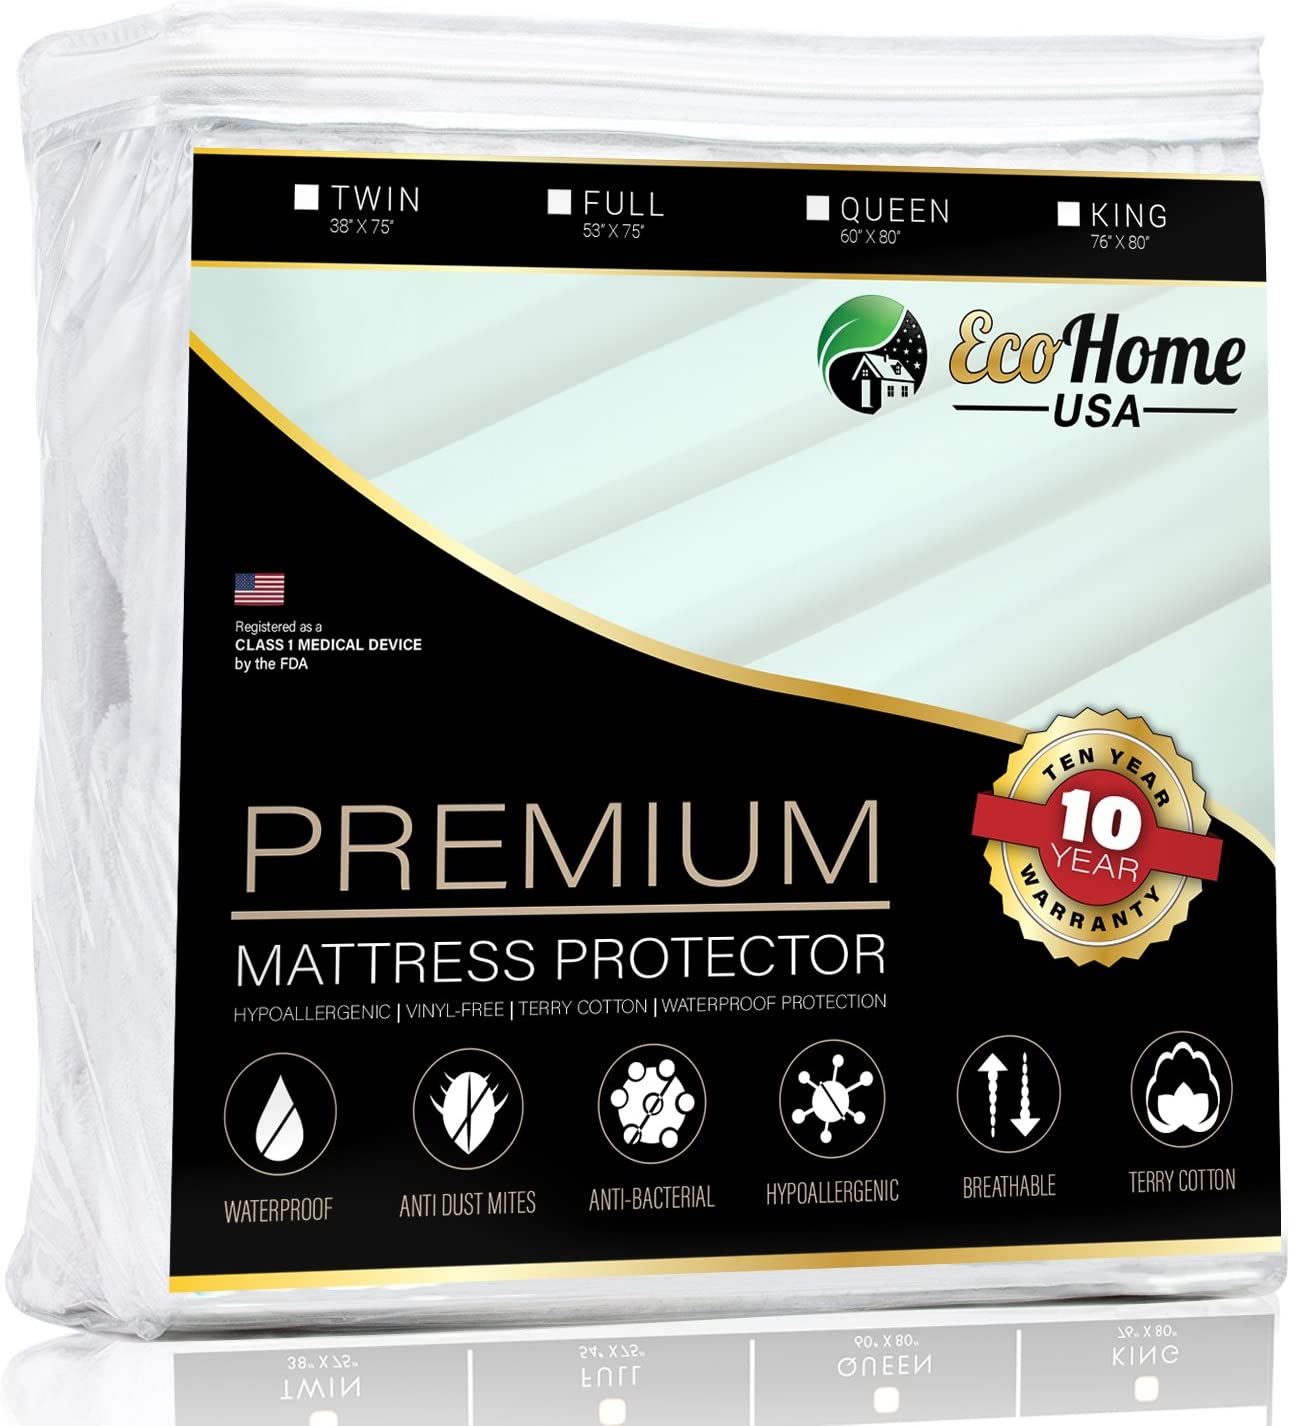 Eco Home USA Premium Mattress Pad Protector - Waterproof & Hypoallergenic Cover - Vinyl Free, Terry Cotton Topper (Queen)